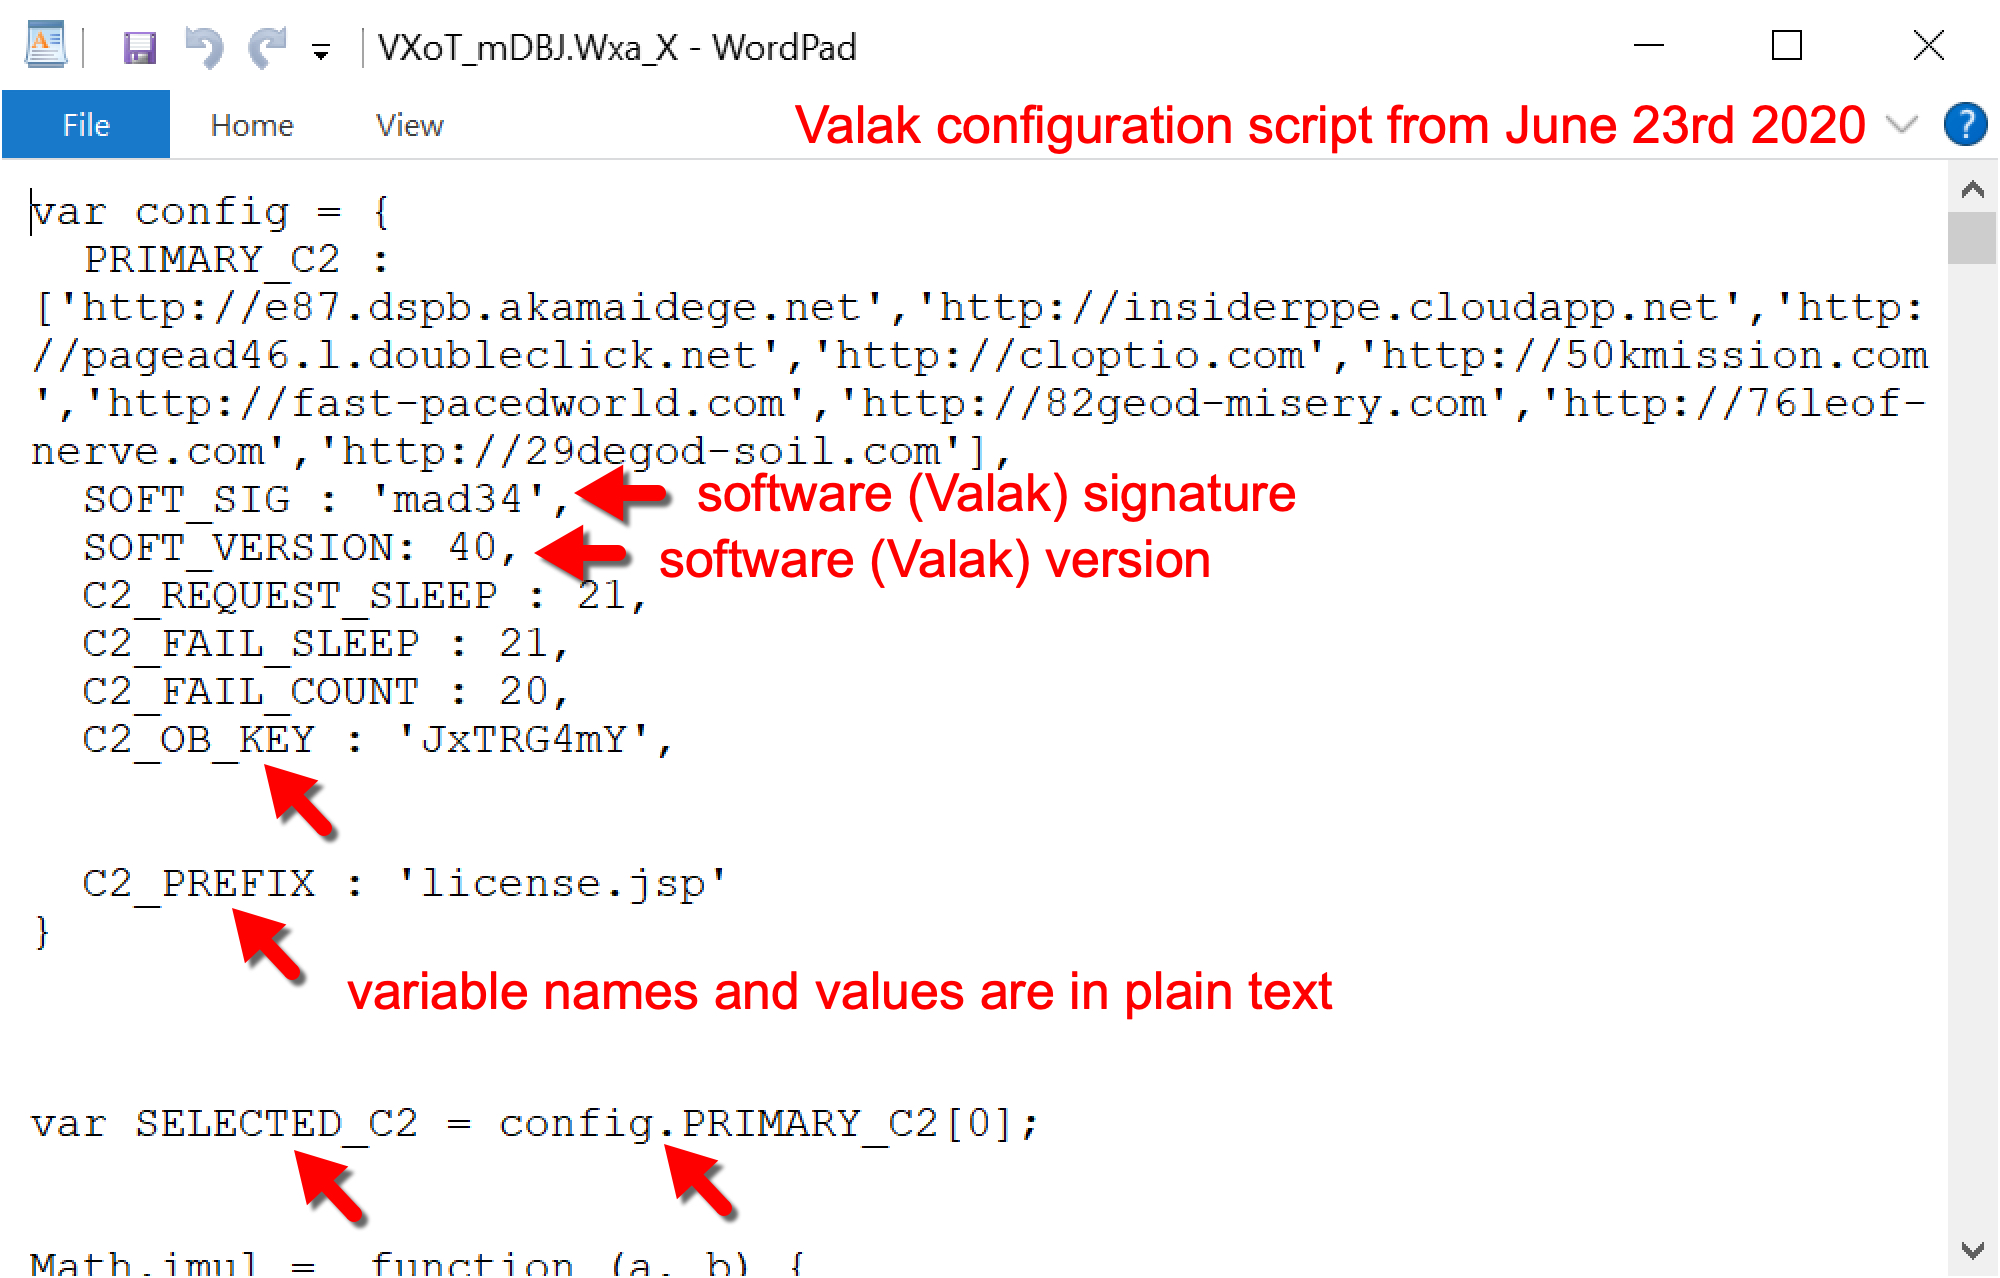 Valak configuration script from June 23, 2020, shows software (Valak) signature, software (Valak) version, and variable names and values in plain text.